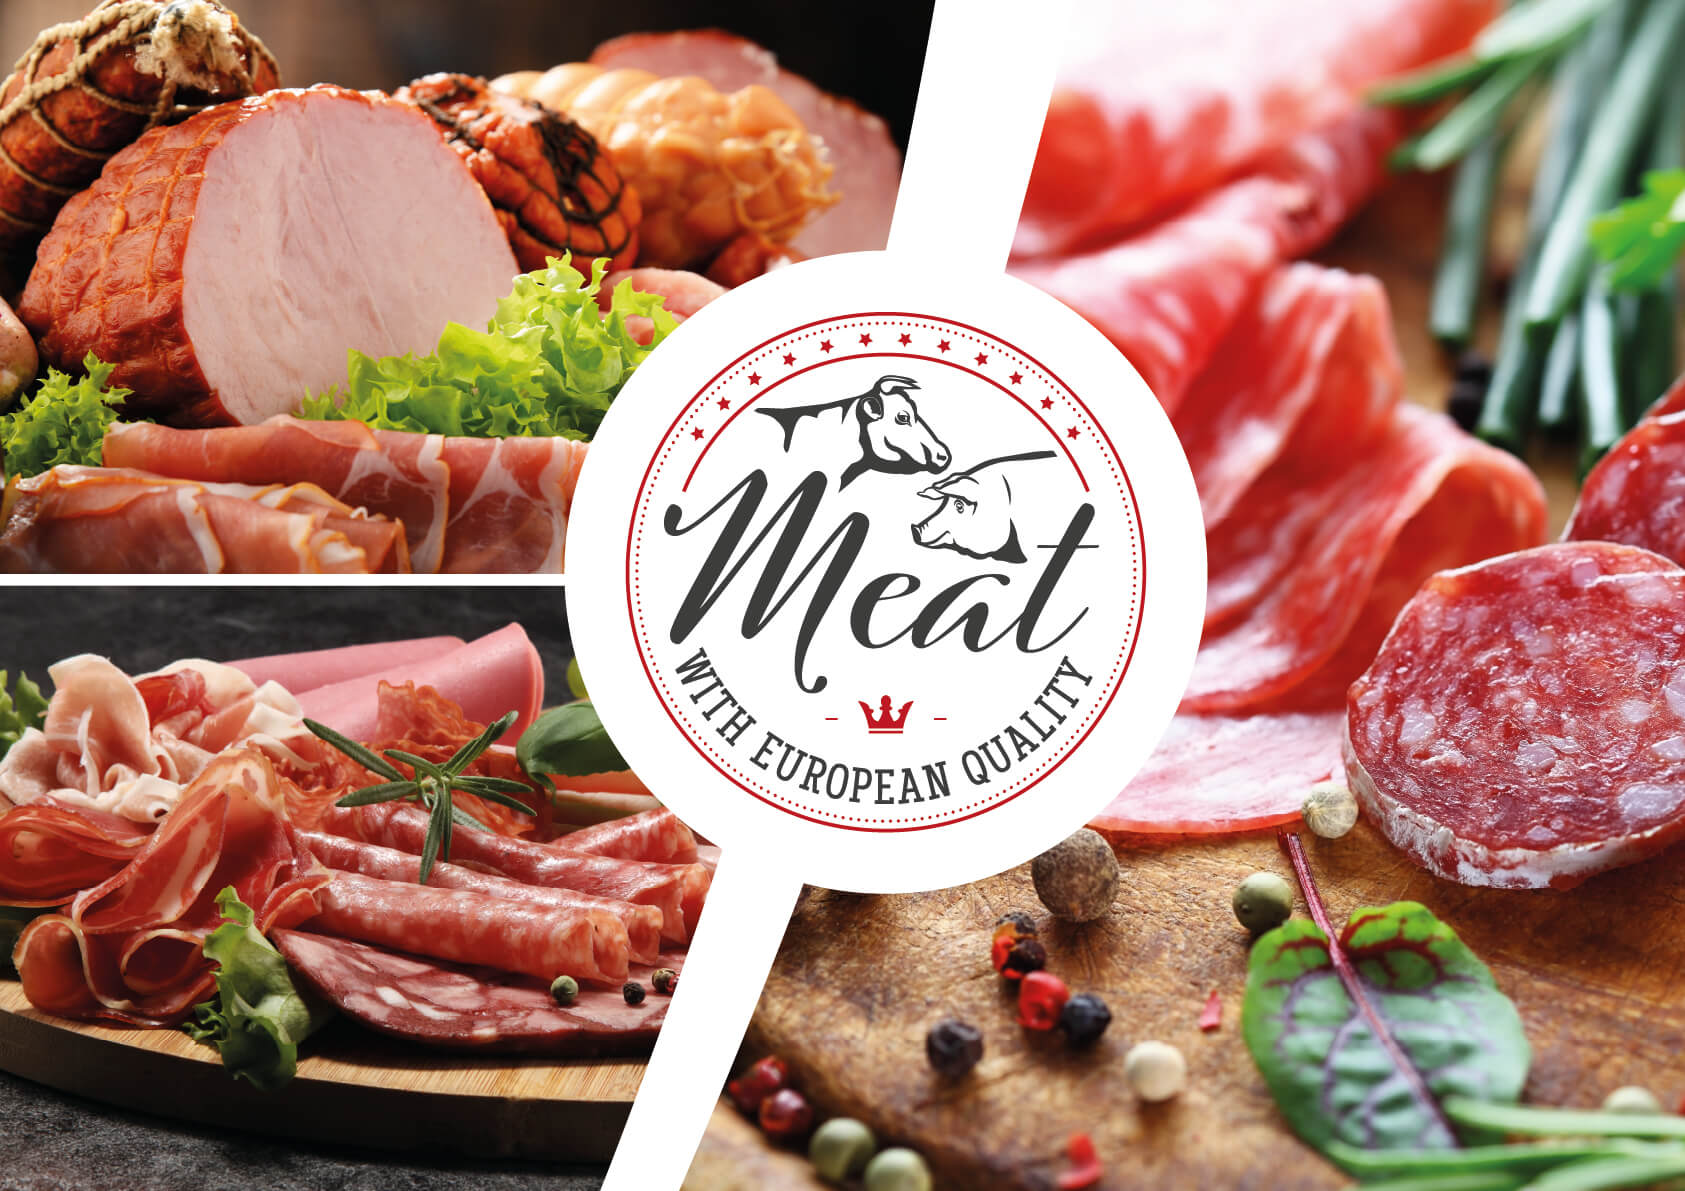 Matured cold cuts – a way to make tasty, modern products known since antiquity